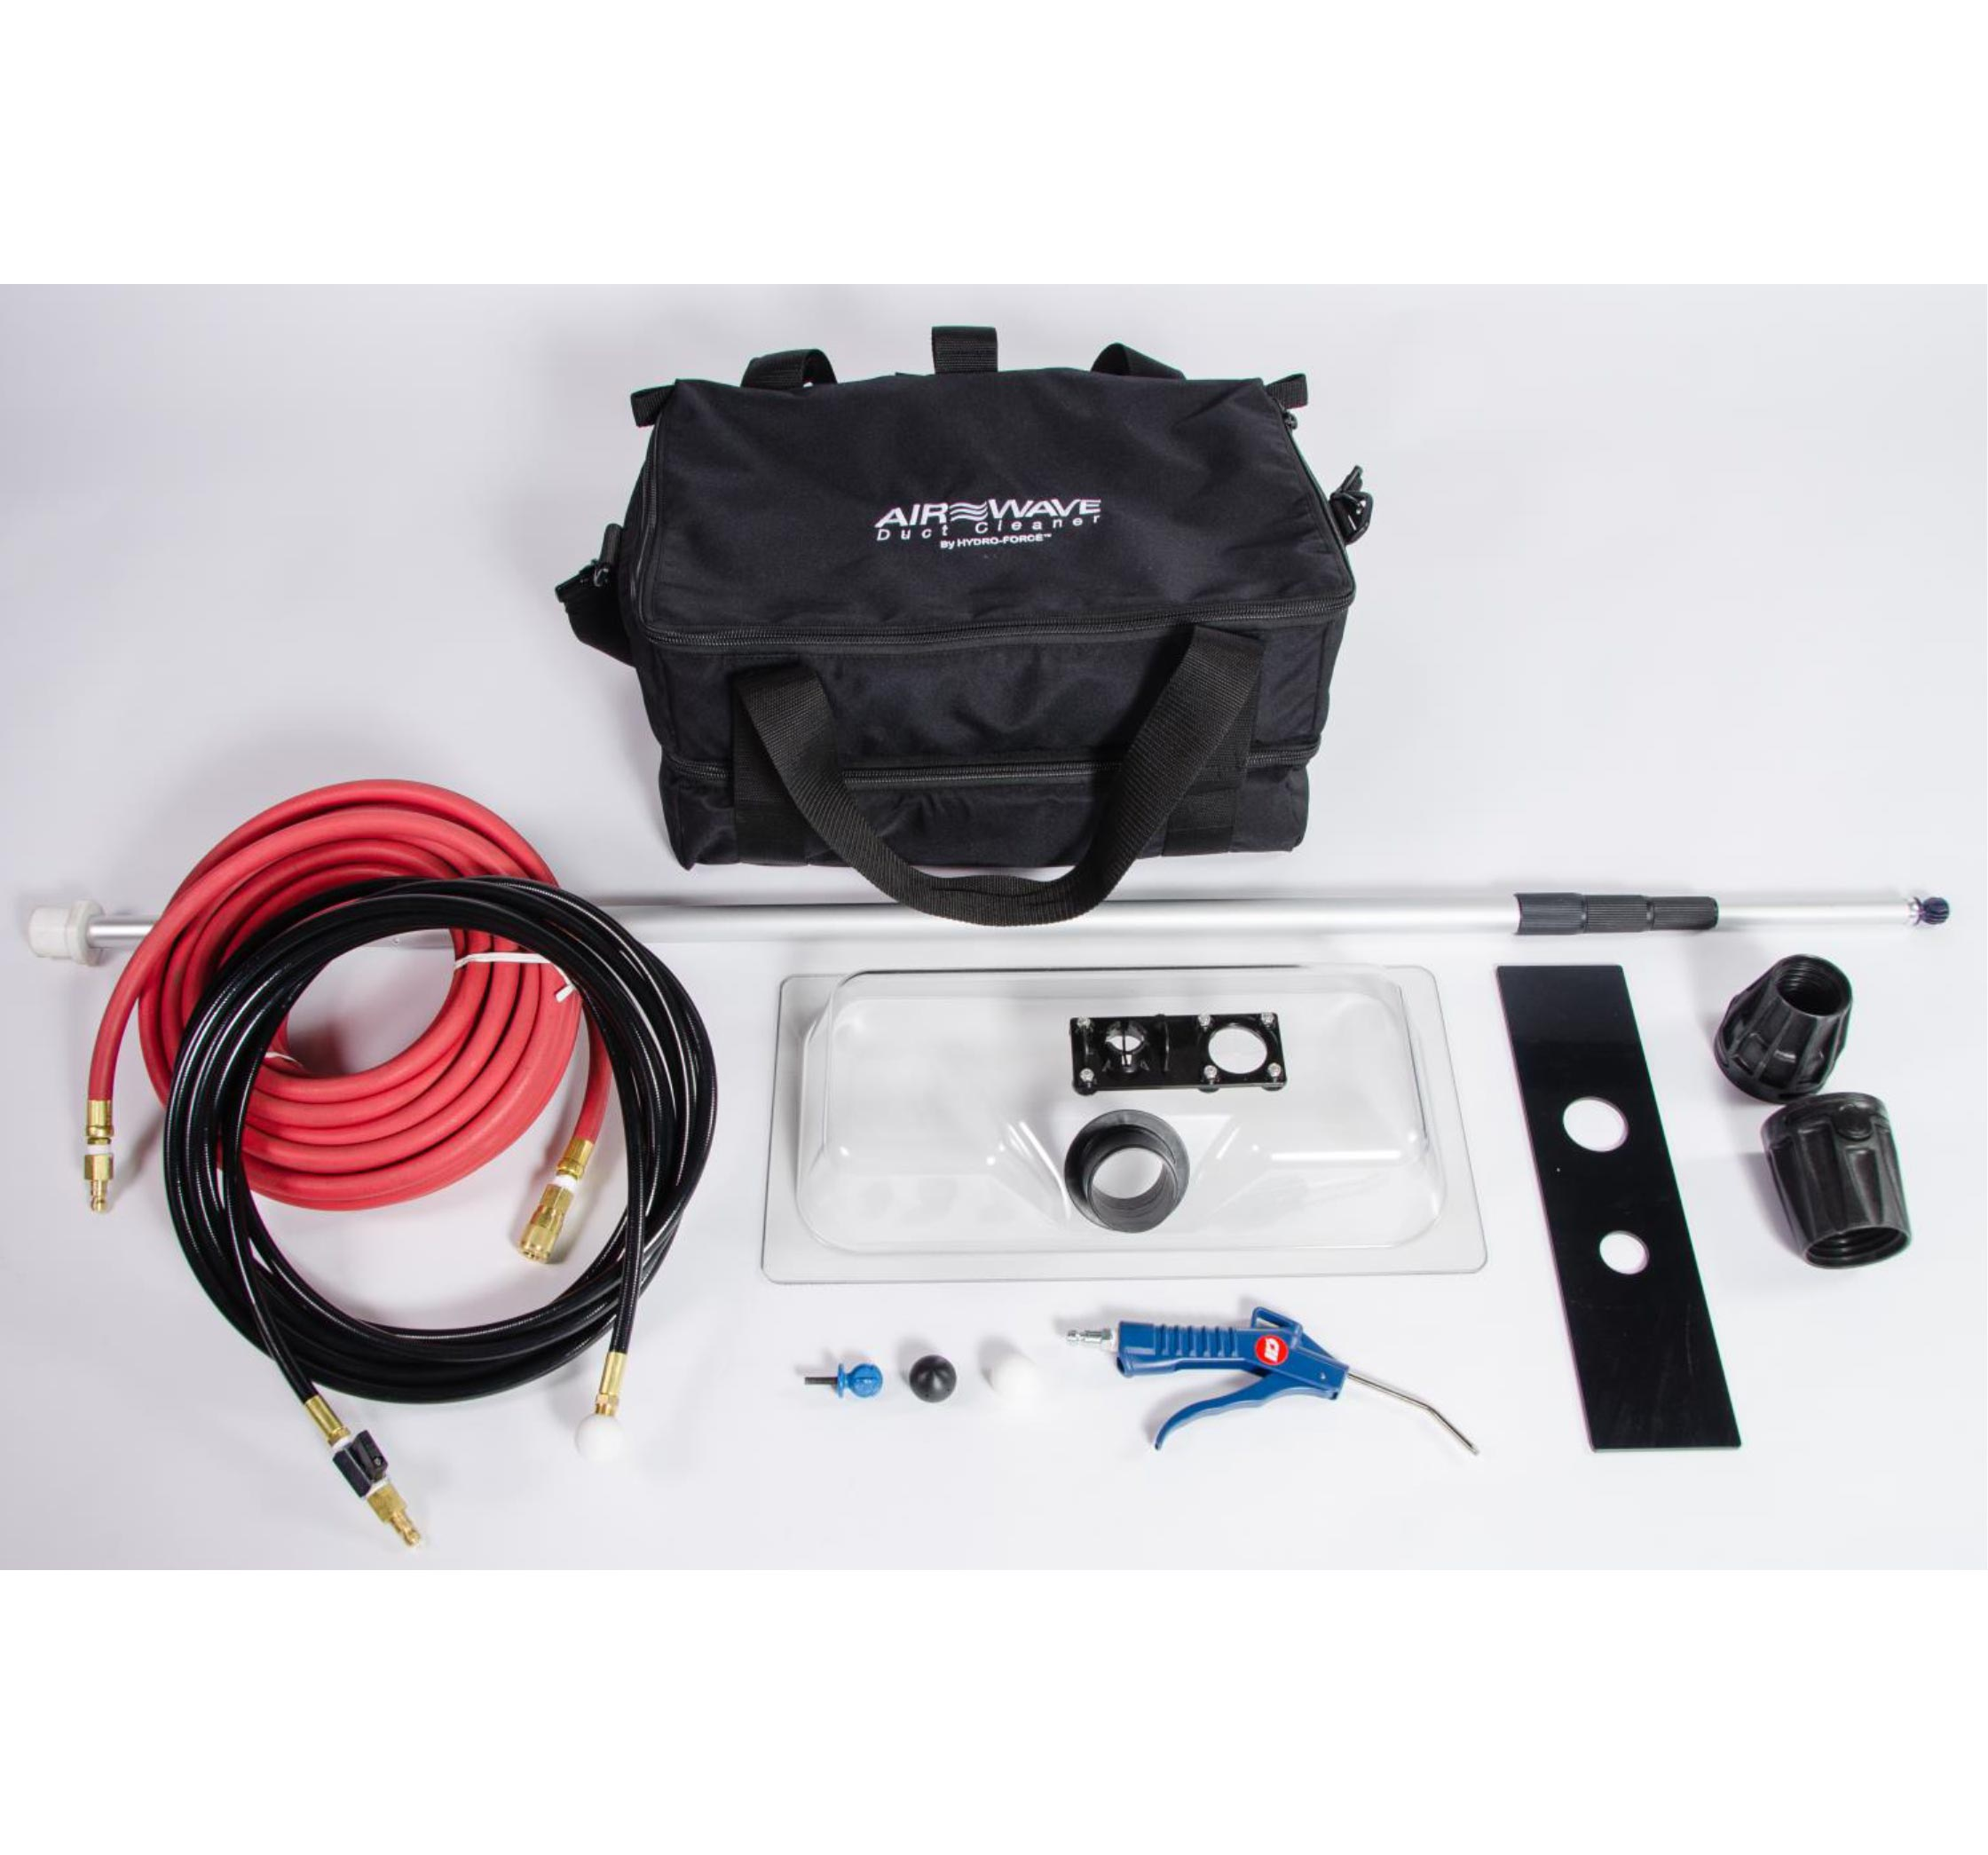 Air Wave Duct Cleaning System AC040 FREE Shipping